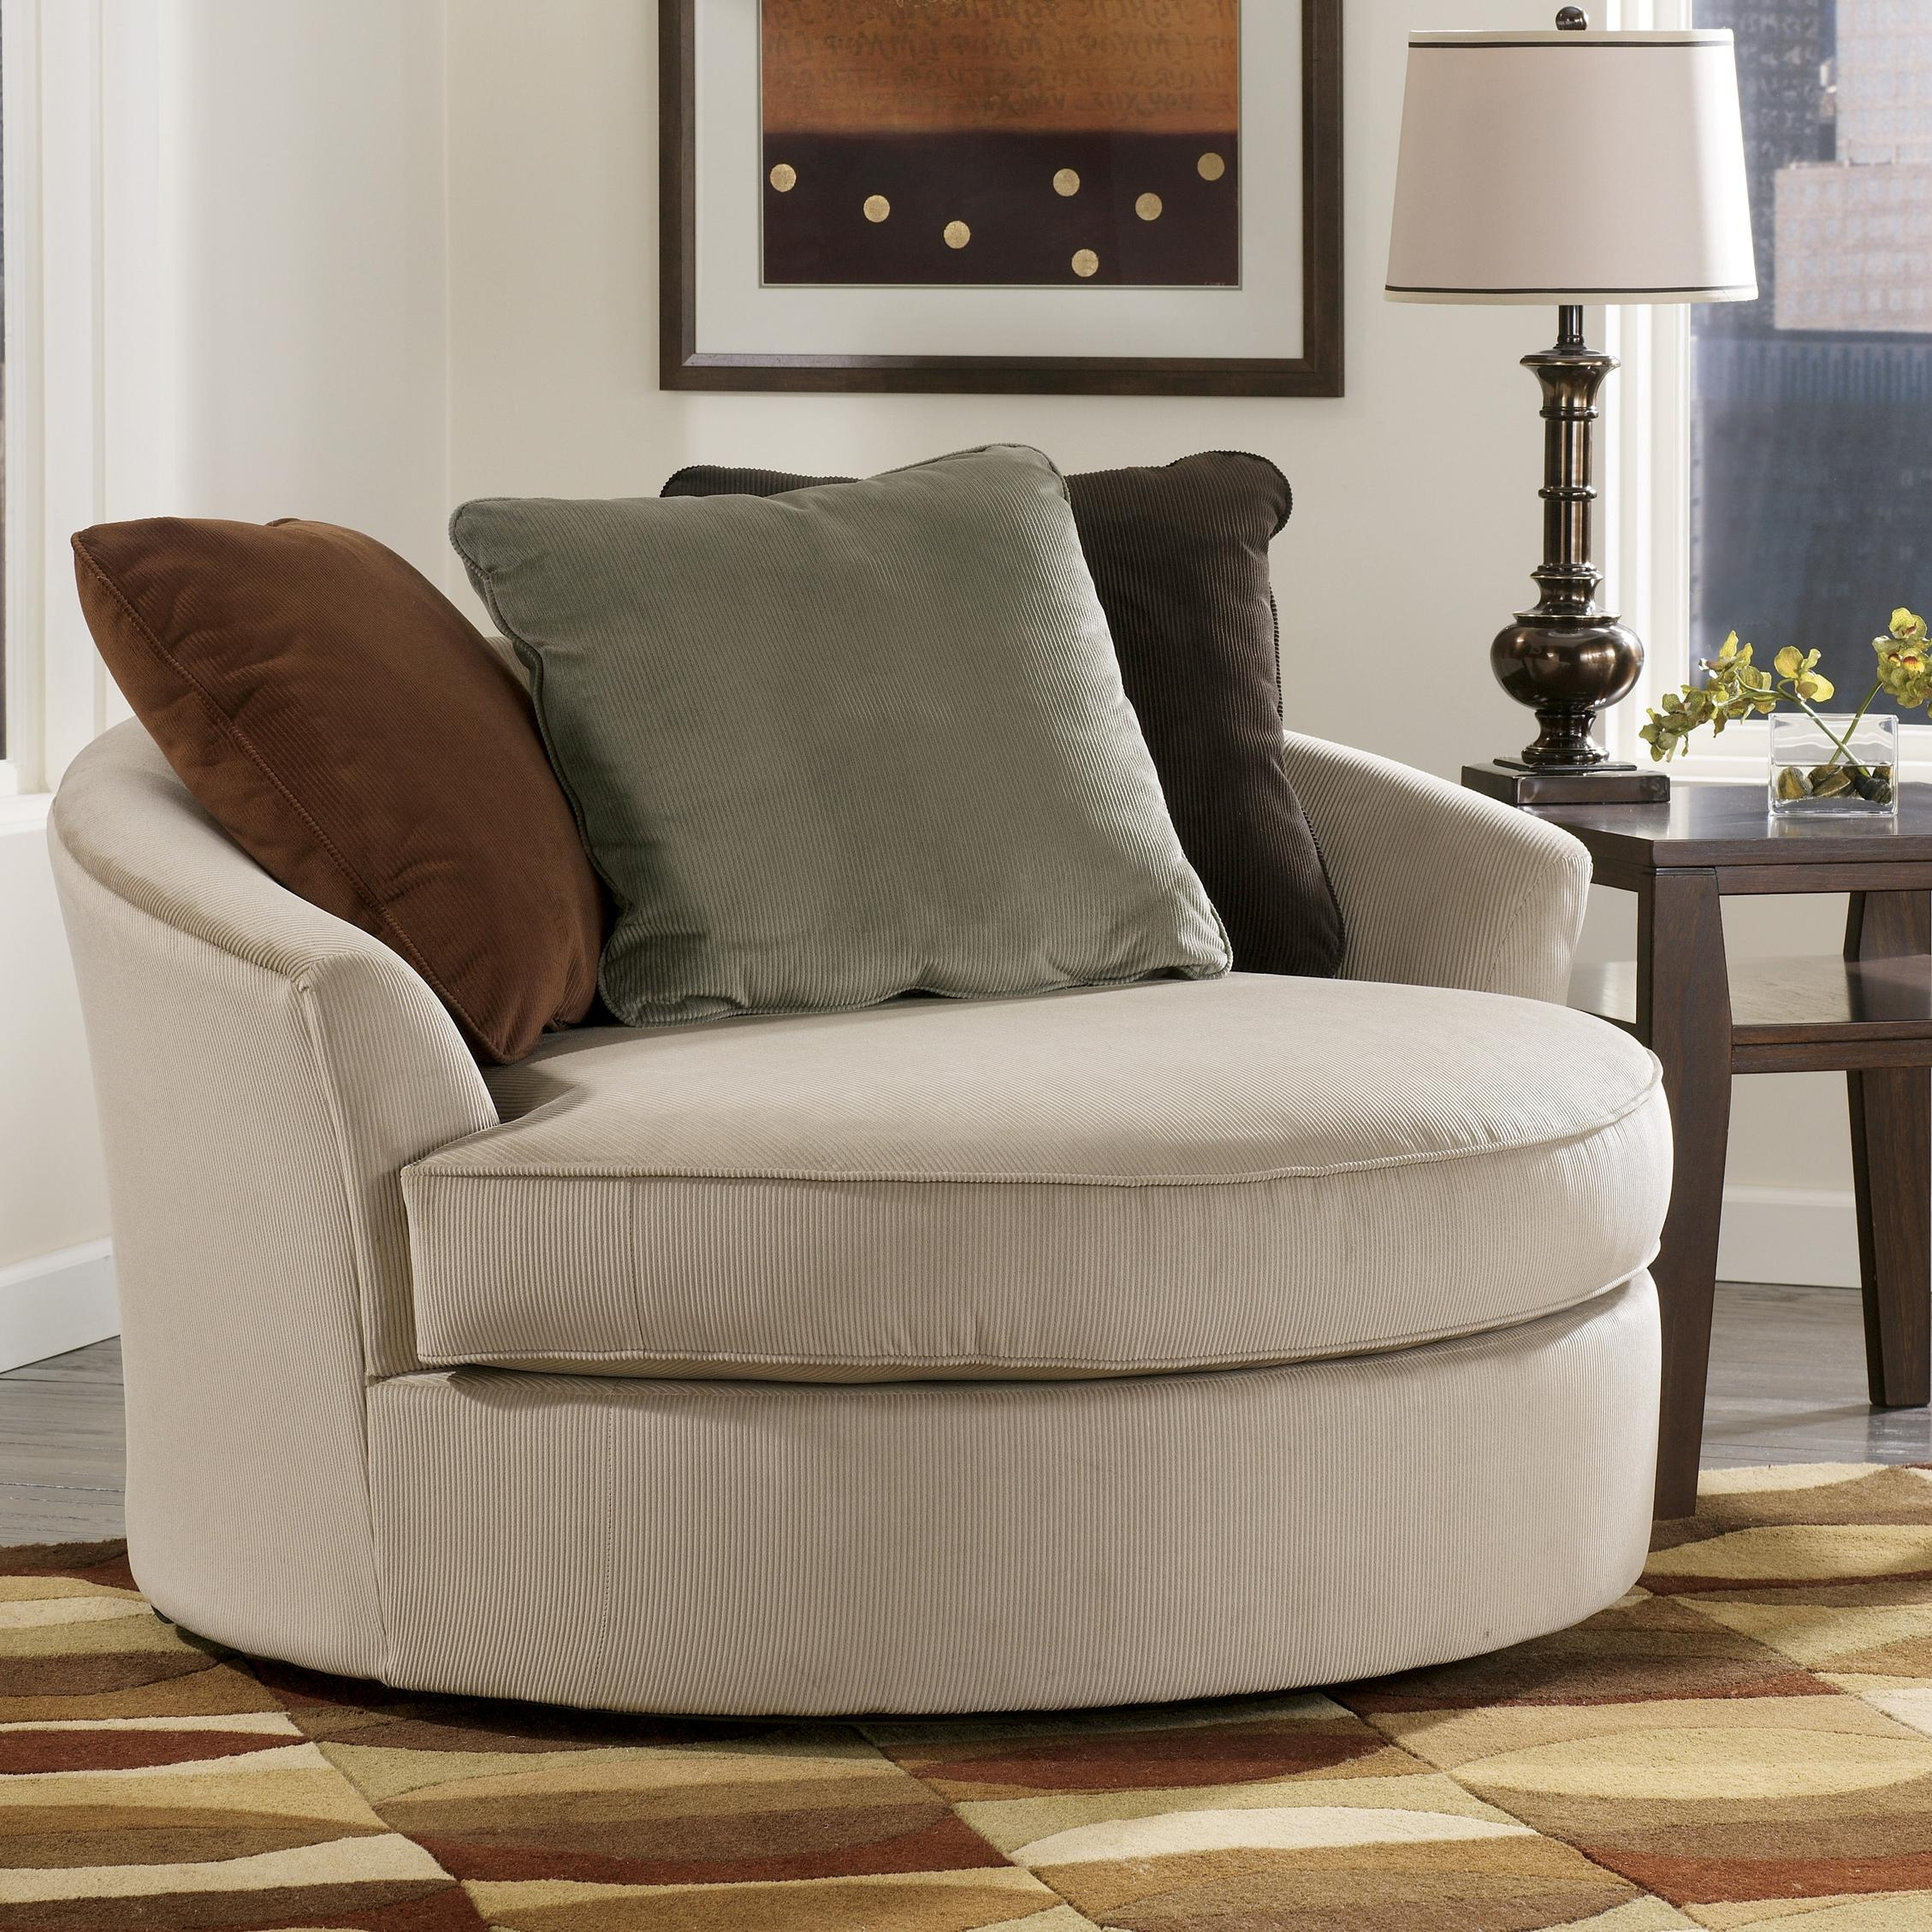 Laken Oversized Round Swivel Chair Signature Design Ashley Pertaining To Big Round Sofa Chairs (Image 8 of 15)